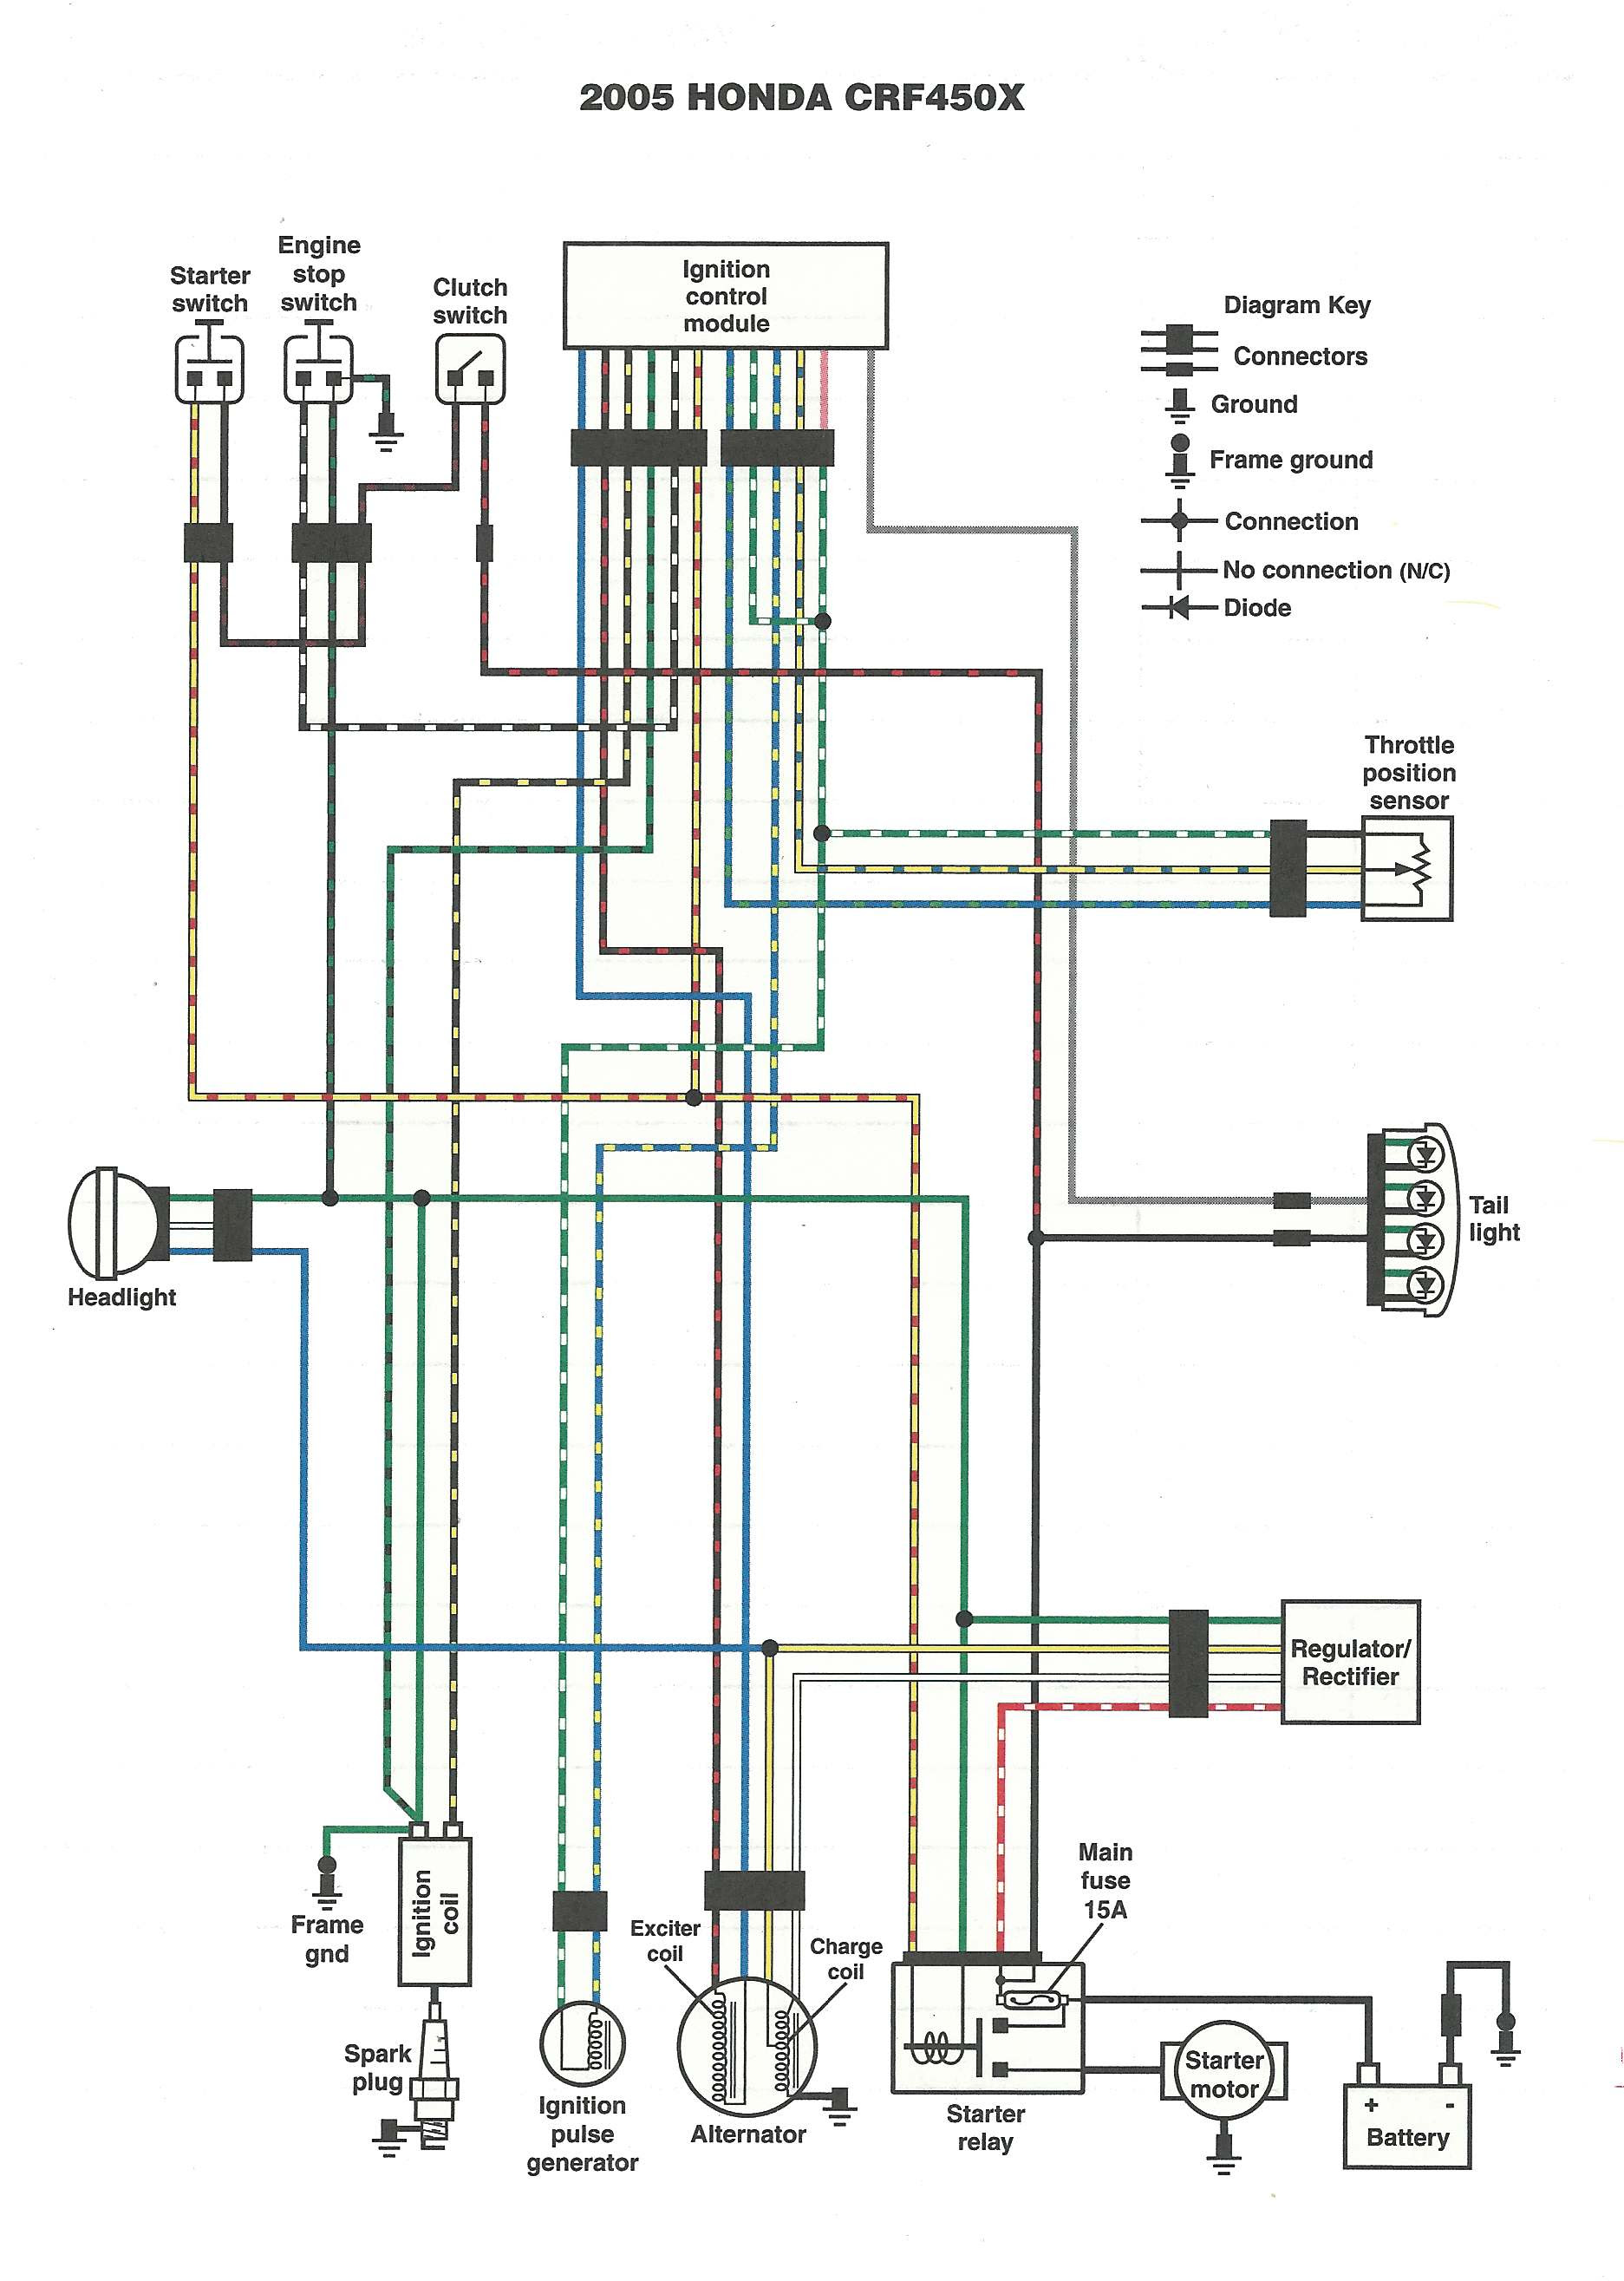 Diagram Cs144 Wiring Diagram Full Version Hd Quality Wiring Diagram Diagramhaferf Alintec It